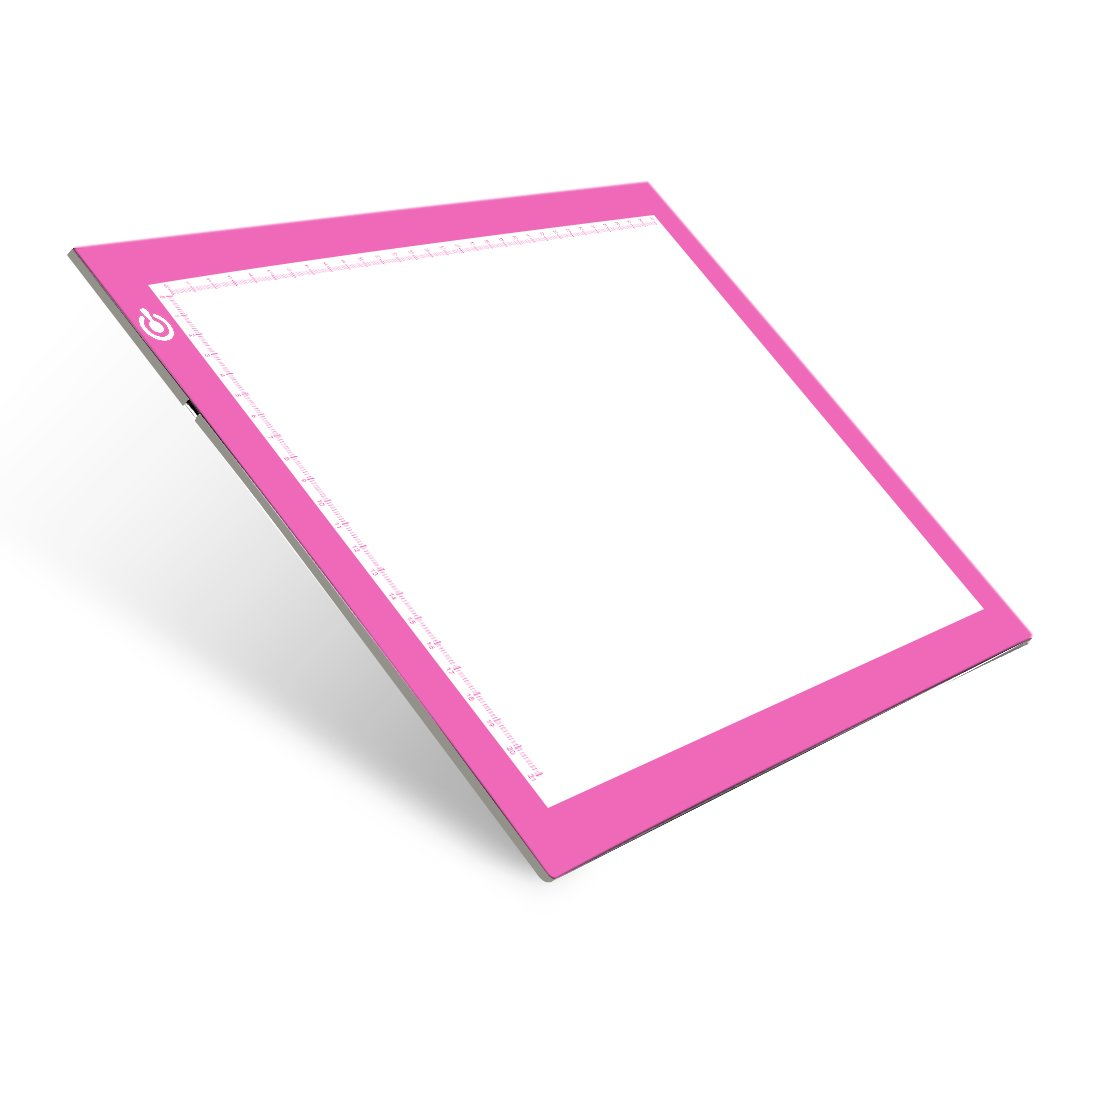 Light Pad Drawing A4 Tracing Light Table NXENTC LED Copy Board Ultra-Thin Display Pad Brightness Adjustable Stencil Artist Art Tracing Tatto Table Pink by NXENTC